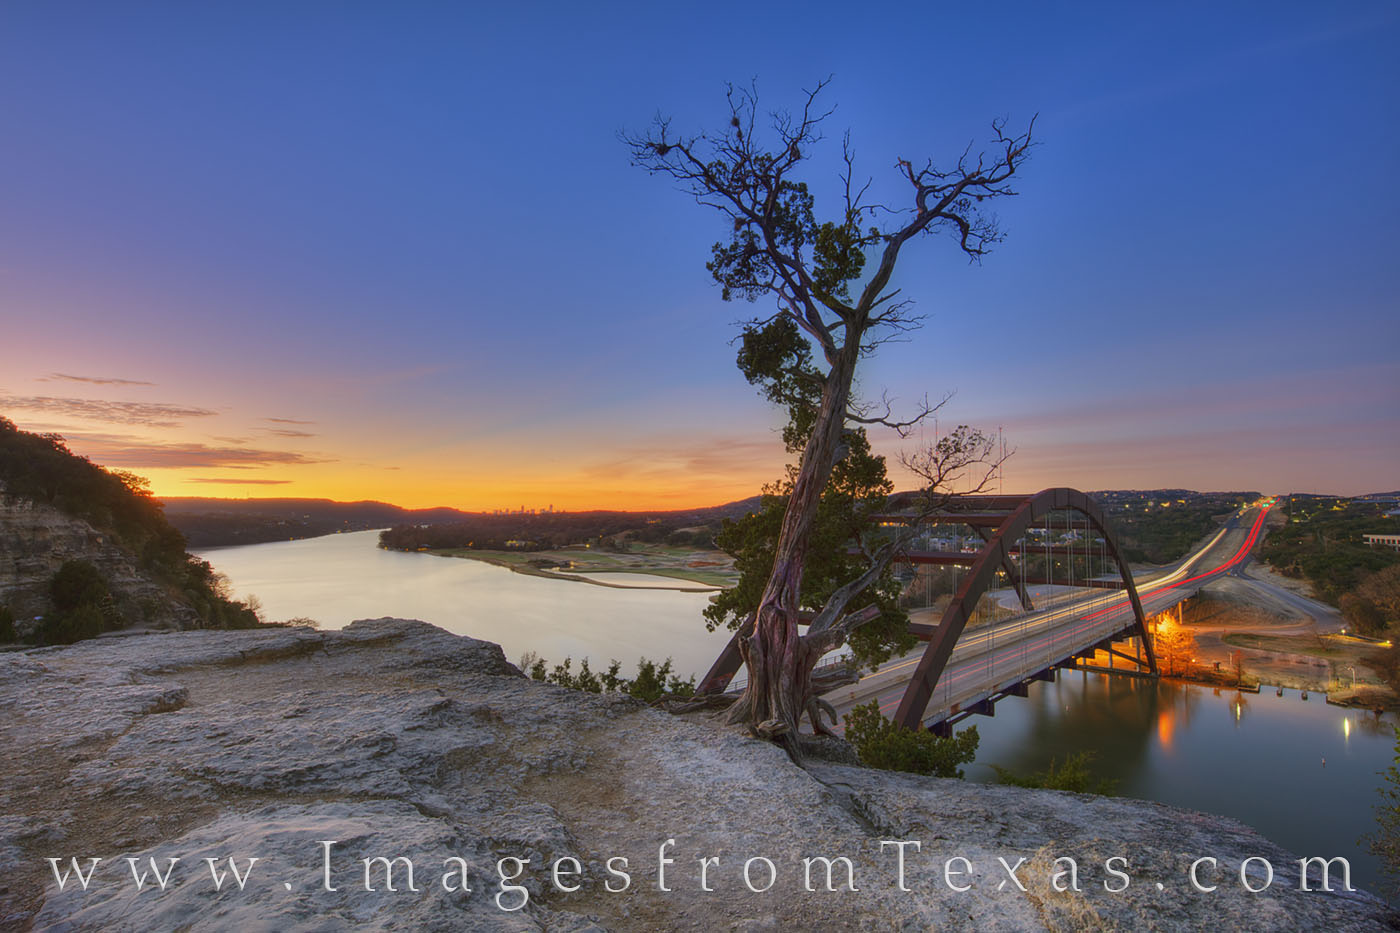 360 bridge, pennybacker bridge, colorado river, austin bridges, austin skyline, downtown austin, sunrise, morning, december, photo